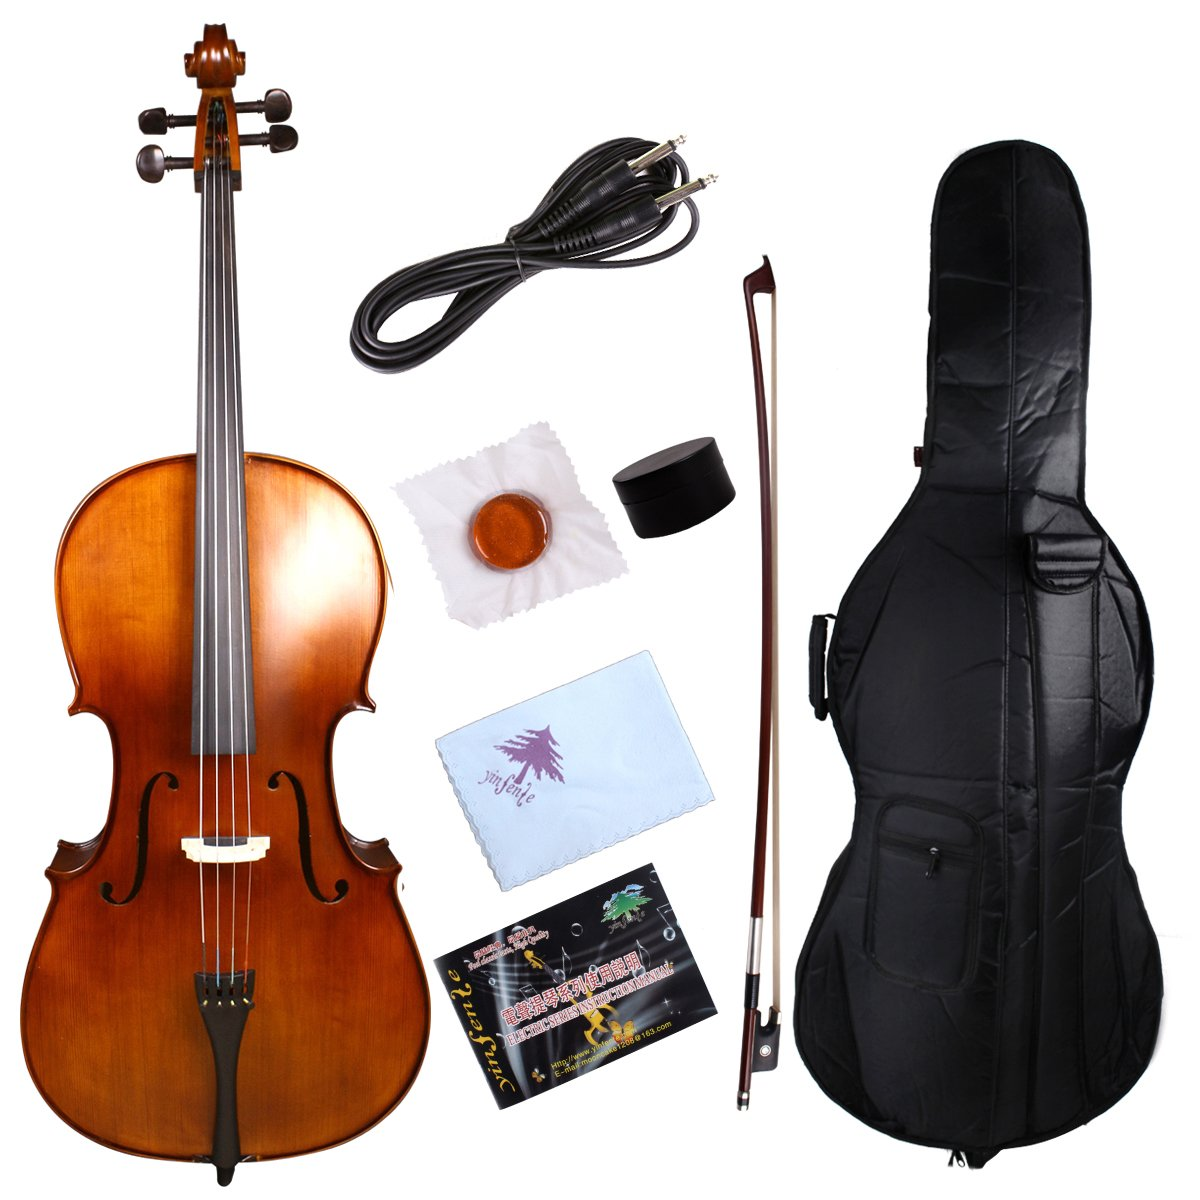 Yinfente Electric Acoustic Cello 4/4 Solid Maple Spruce wood Ebony Fittings Sweet Sound With Cello Bag Bow (Brown) by yinfente (Image #1)